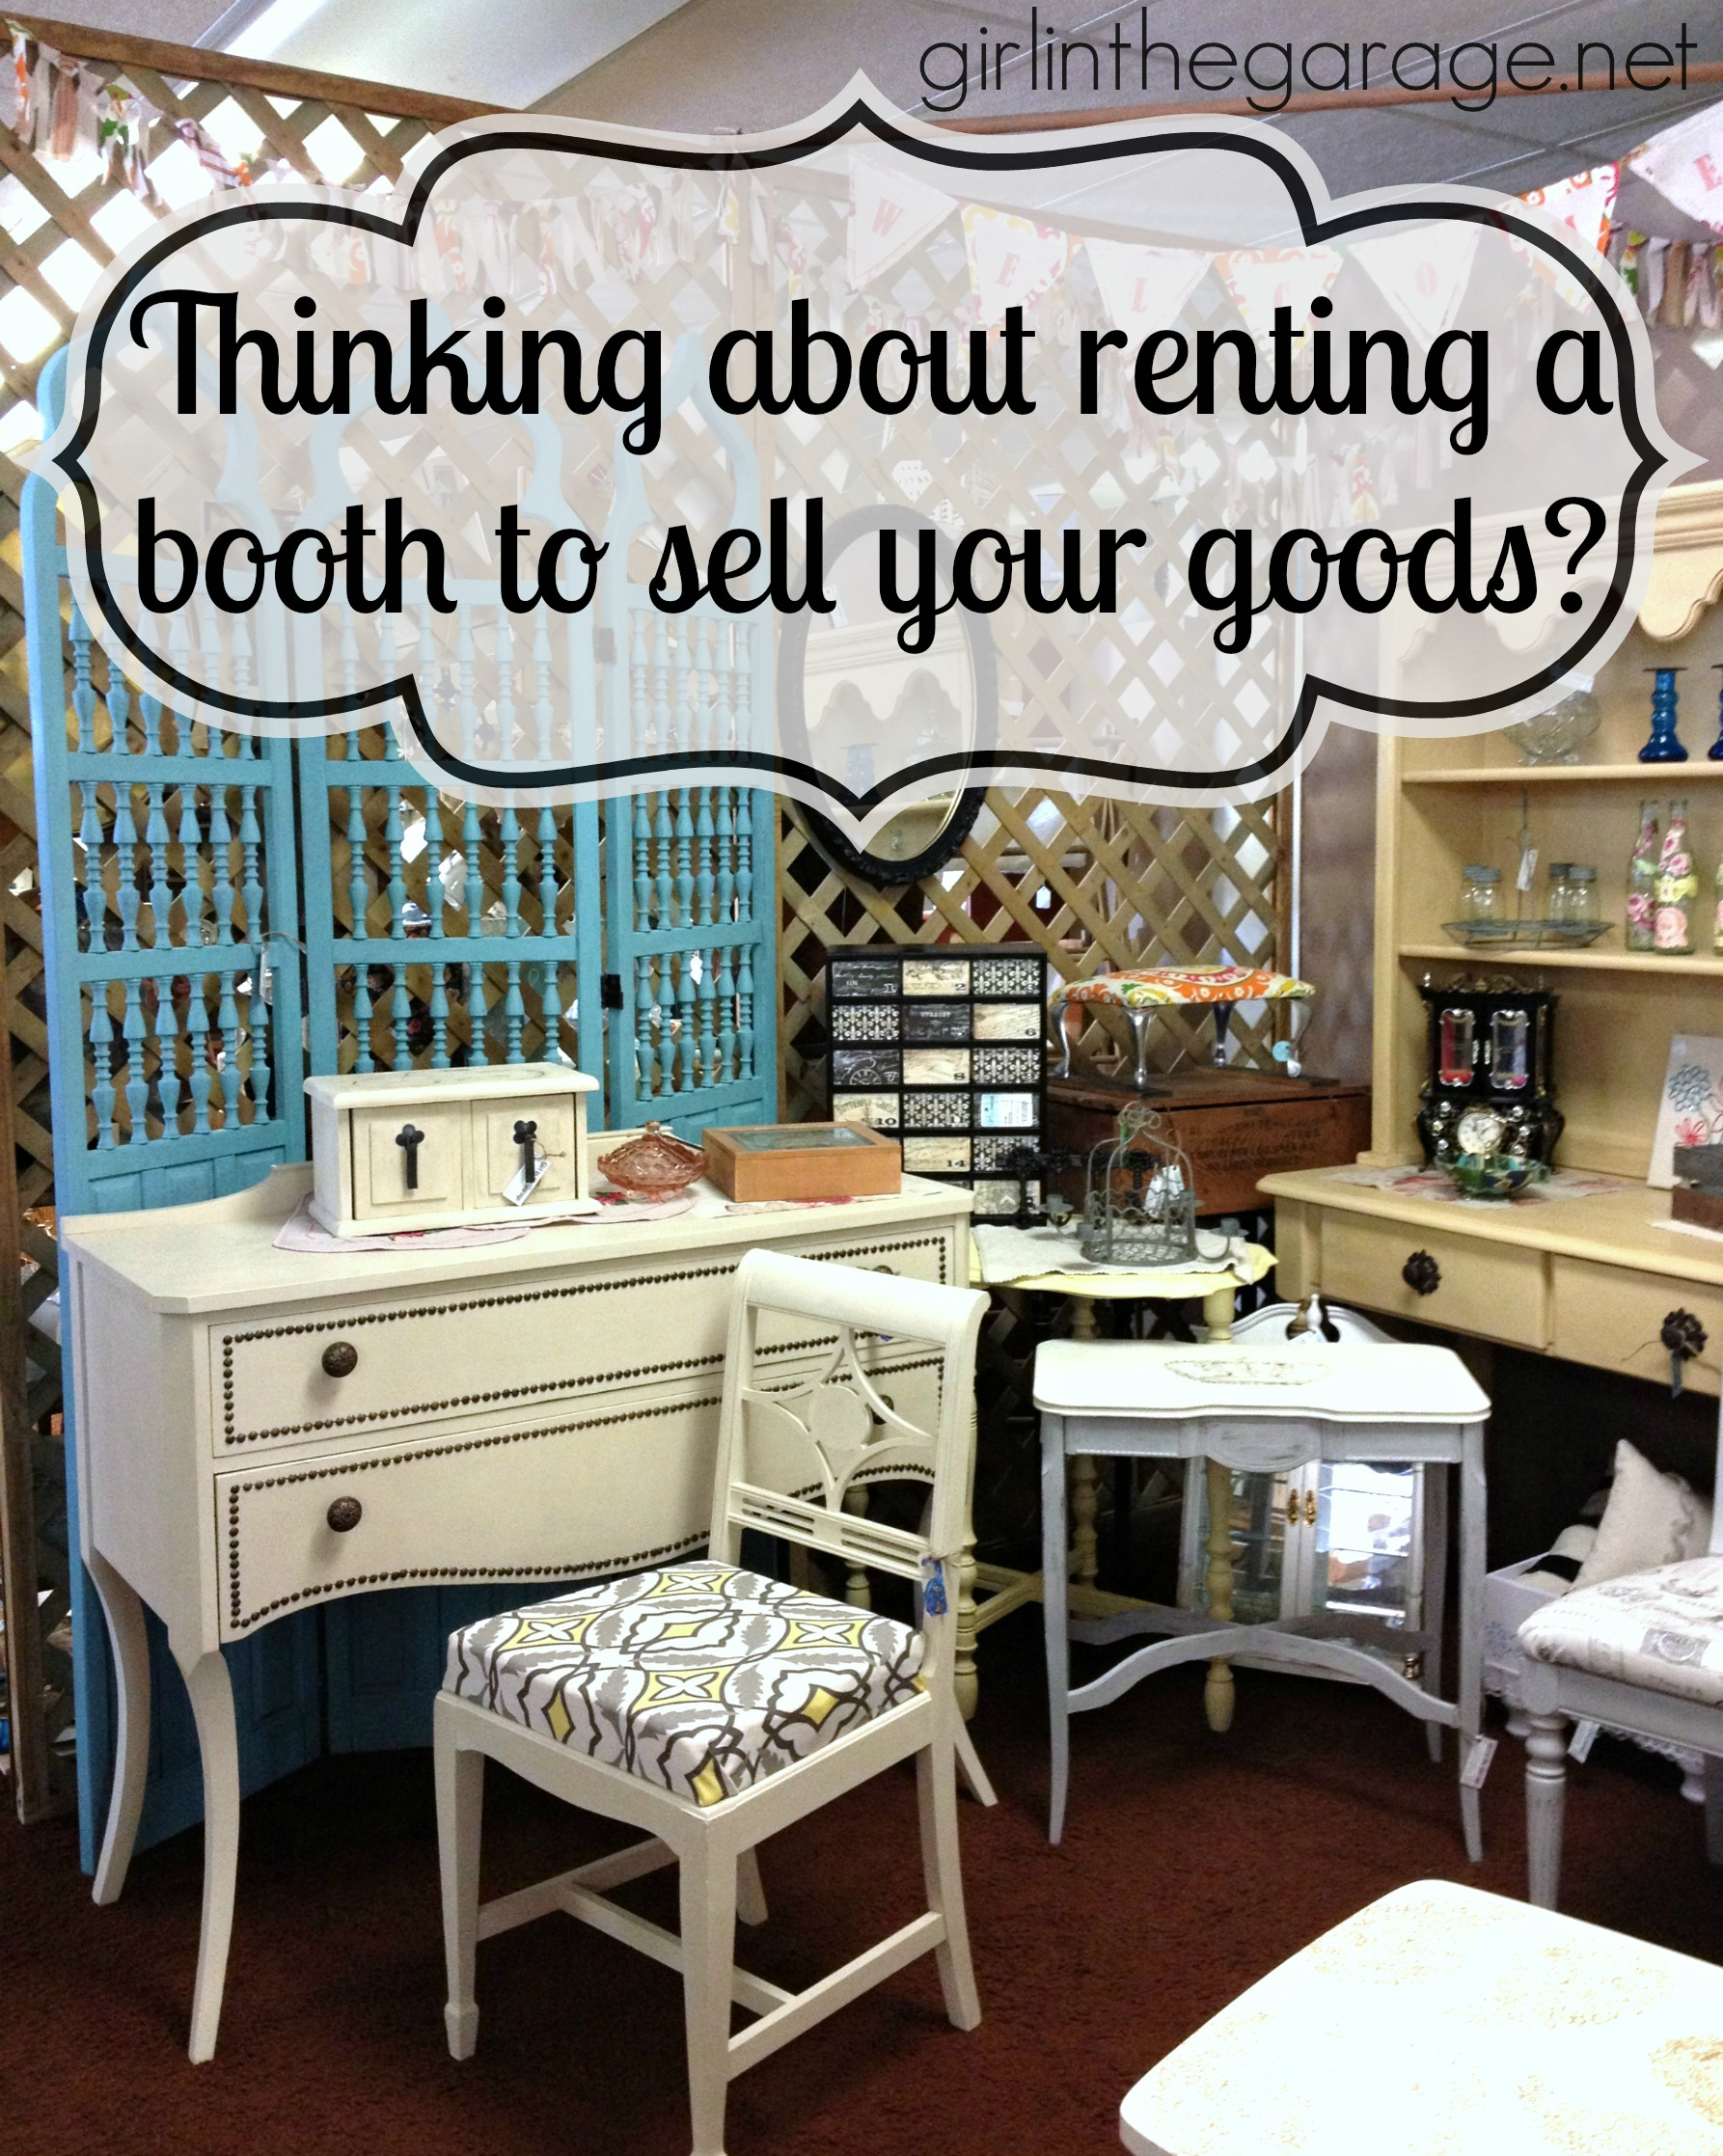 Bon Thinking About Renting A Booth To Sell Your Goods? Advice From  Girlinthegarage.net